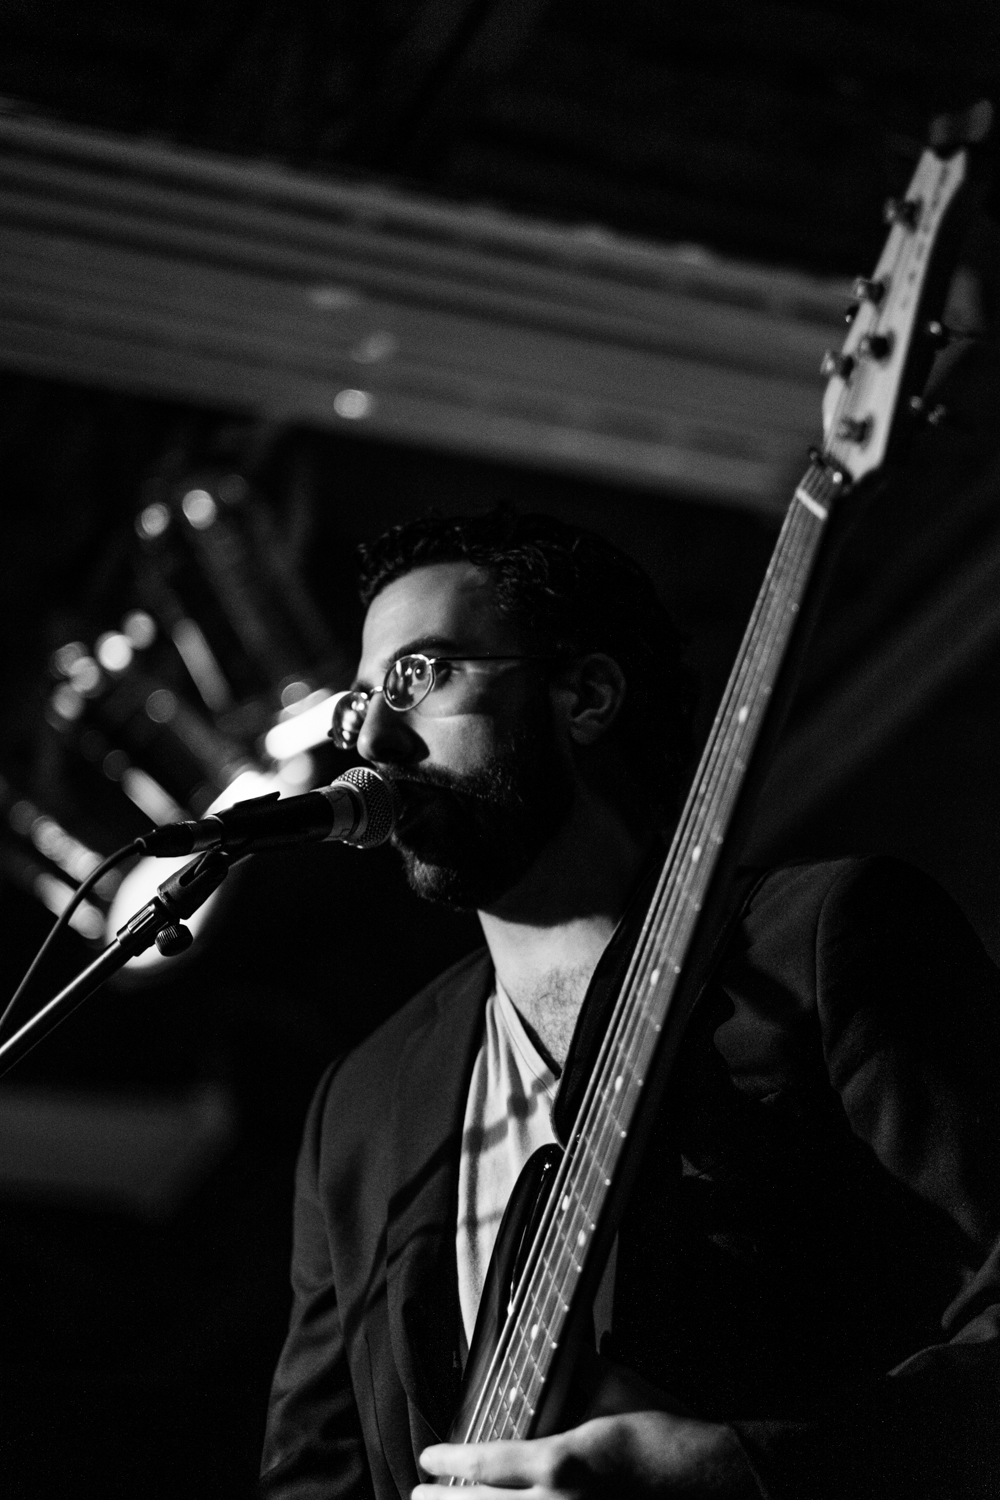 "Tony Schreiner - Bass, Talkbox   ""If it's not funky, take it to the curb and squish it."" Tony's life motto was honed growing up on the Southside of Minneapolis where a blend of hip hop, punk, R&B, afro-cuban, and pop blended into a unique score that would influence his life's work as a musician and recording engineer. 90s Tony learned these lessons they way we all might hope to learn anything: wearing acid-washed Jnco jeans and constantly calling things ""dope"". Well squish it Tony did, founding the successful afro-cuban project Malamanya who has performed all over the world. He applies that sense of rhythm and style to You Oughta Know, making Mmmbop that much more MMM-y."